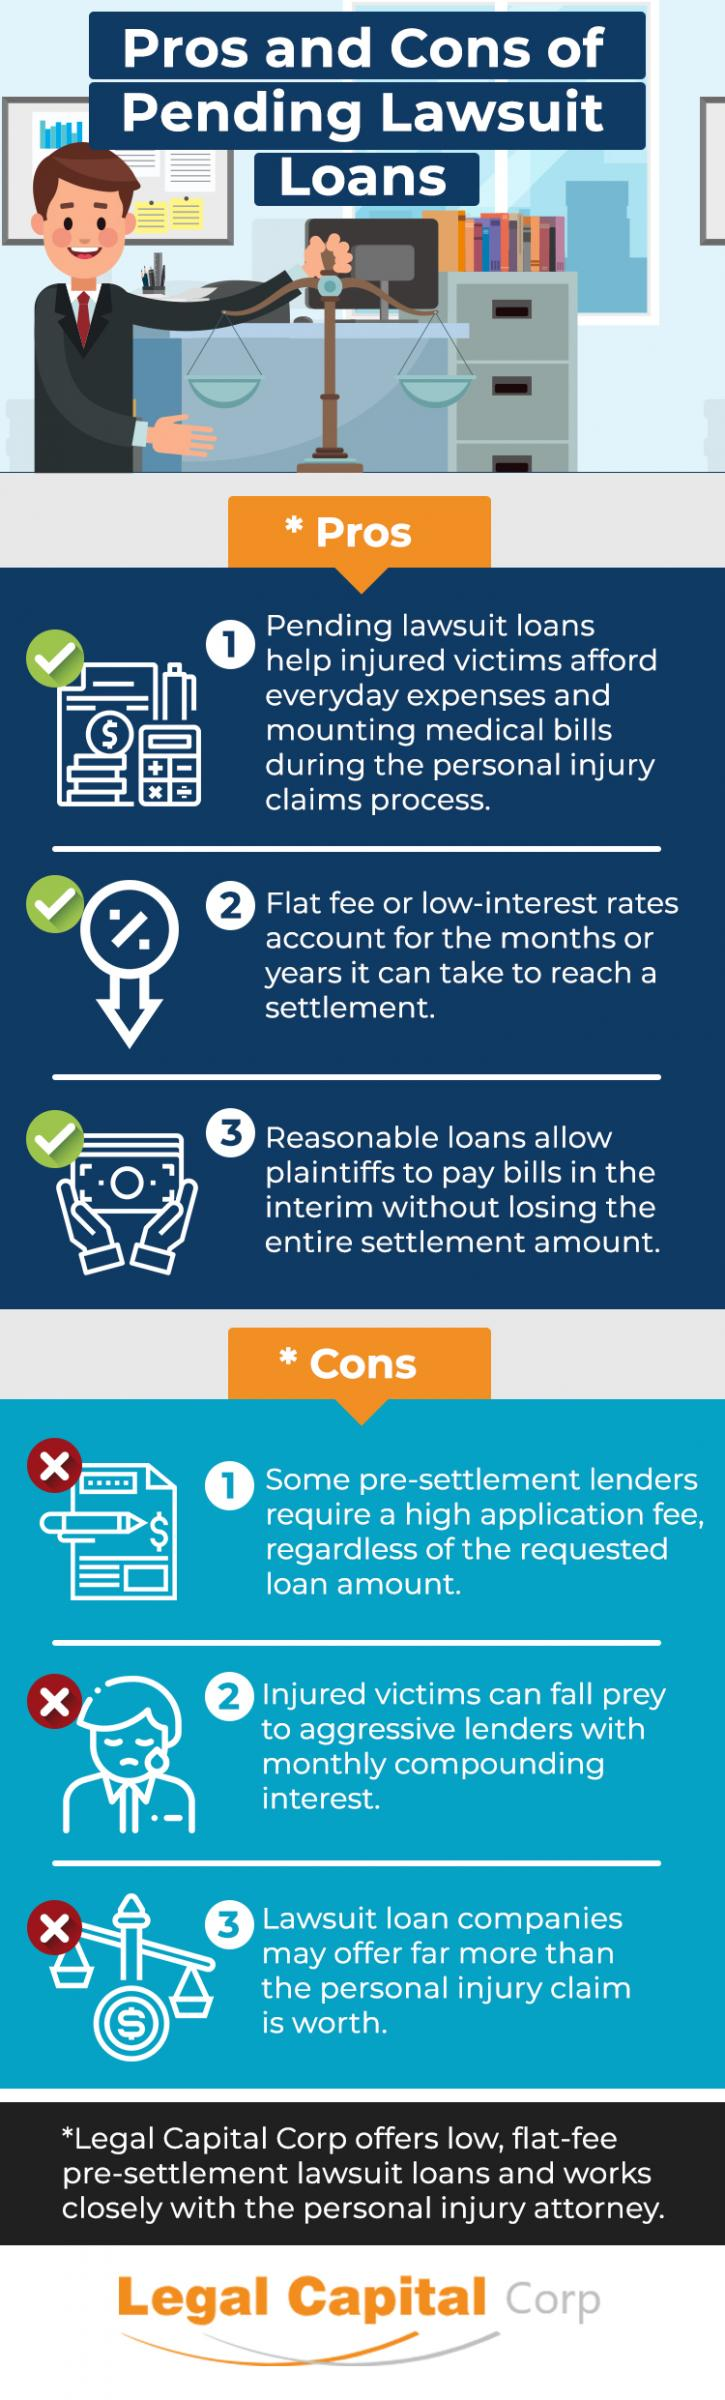 Pending lawsuit loans pro and con infographic for Chicago